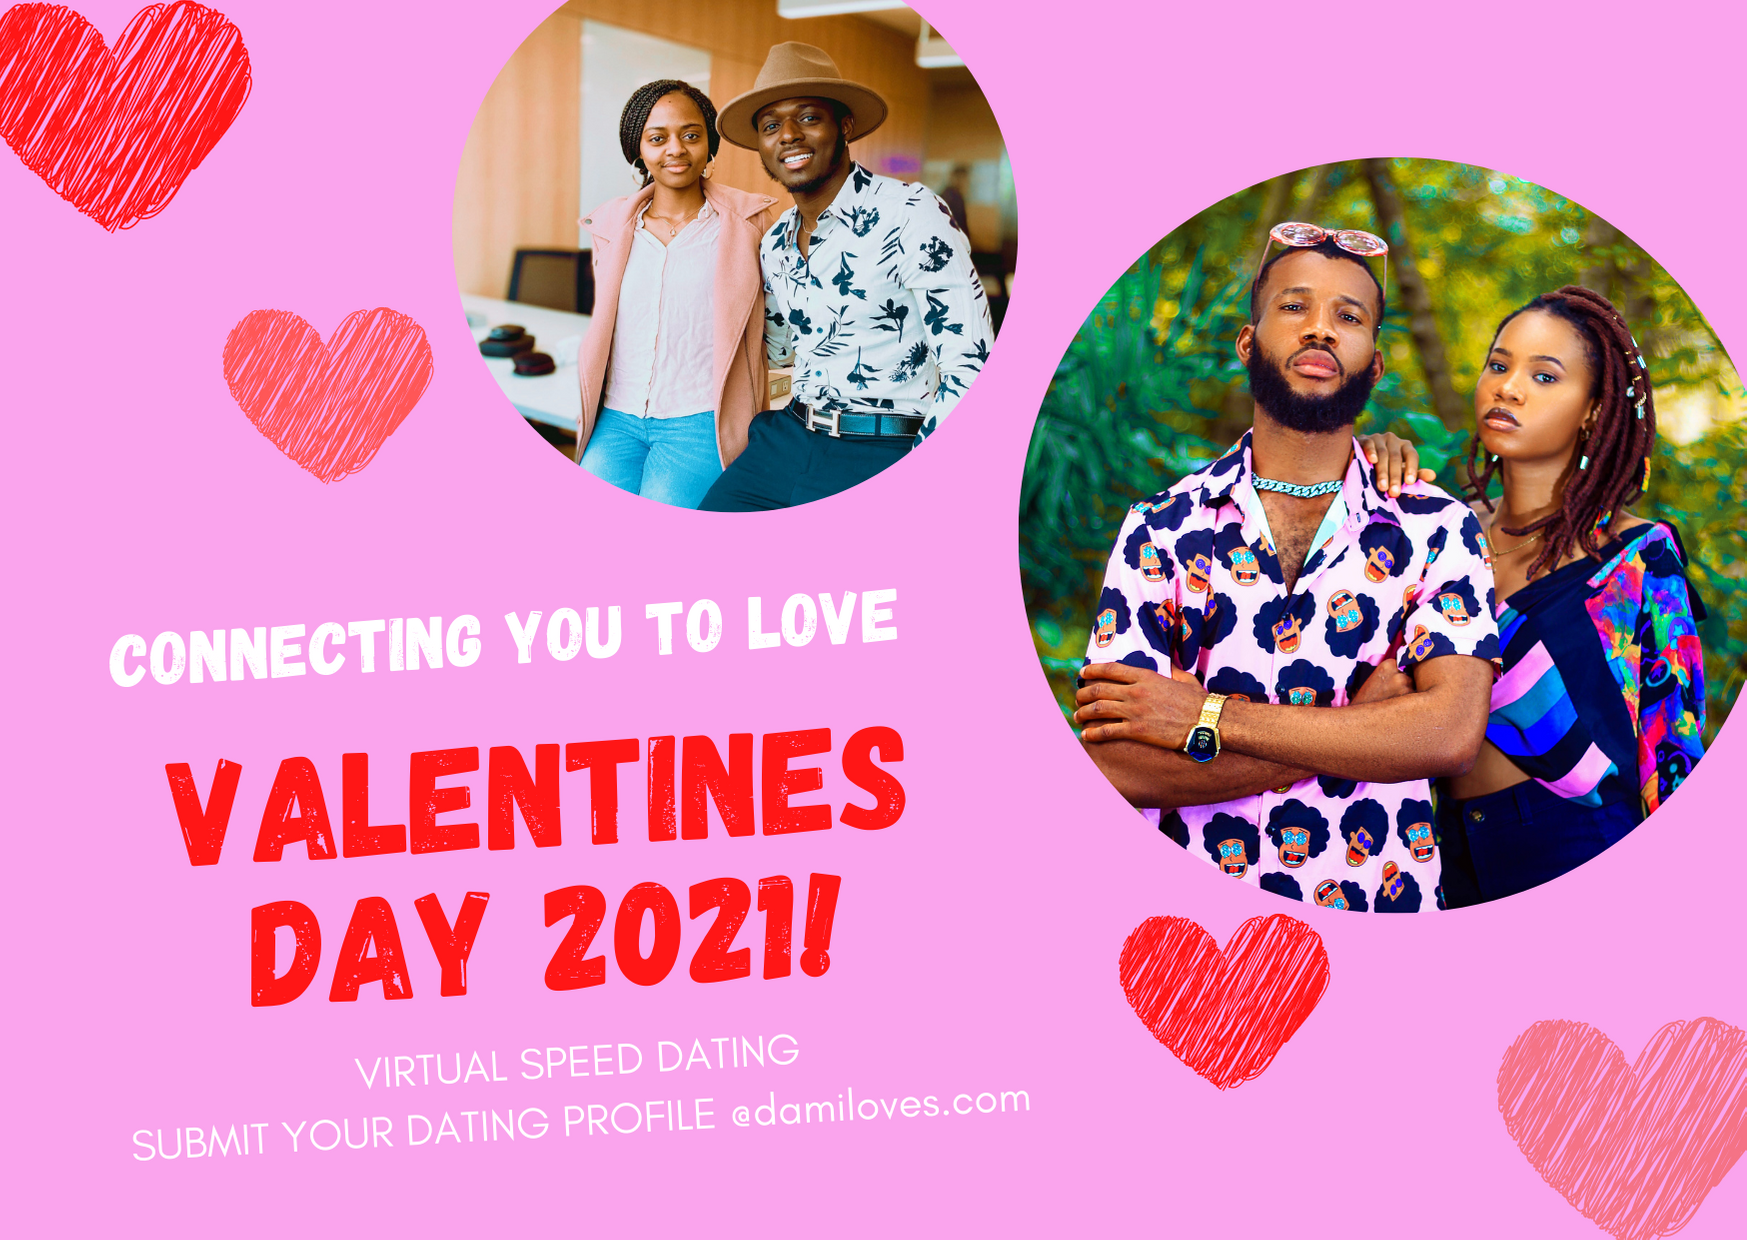 virtual dating experience nigerian dating trends 2021